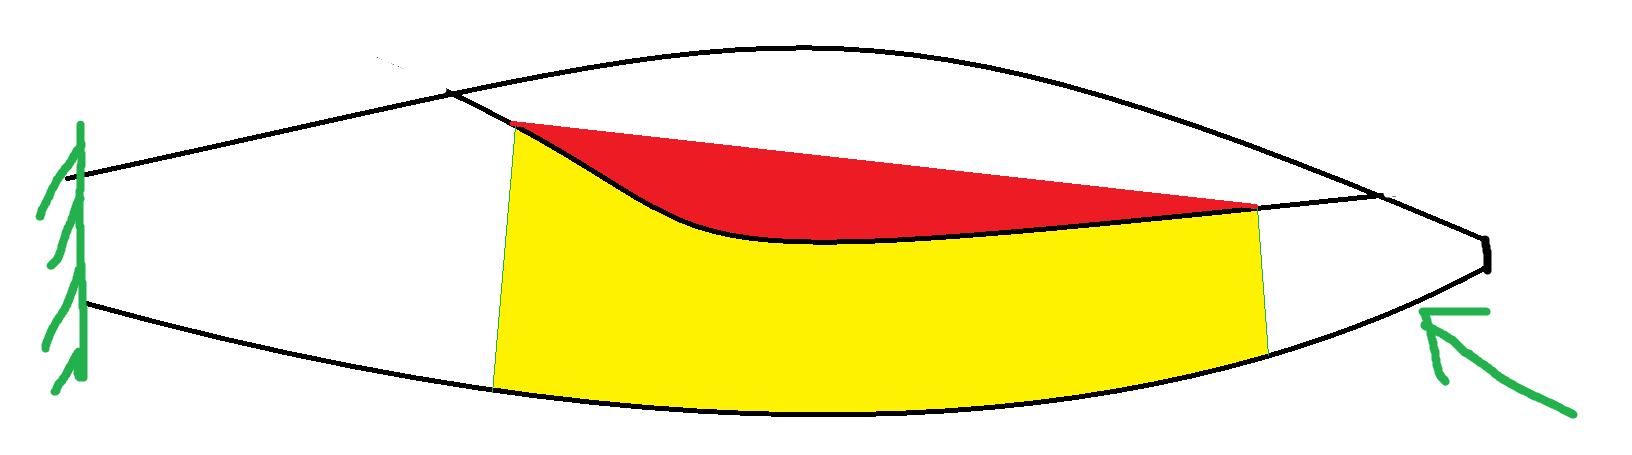 1614013823542.png